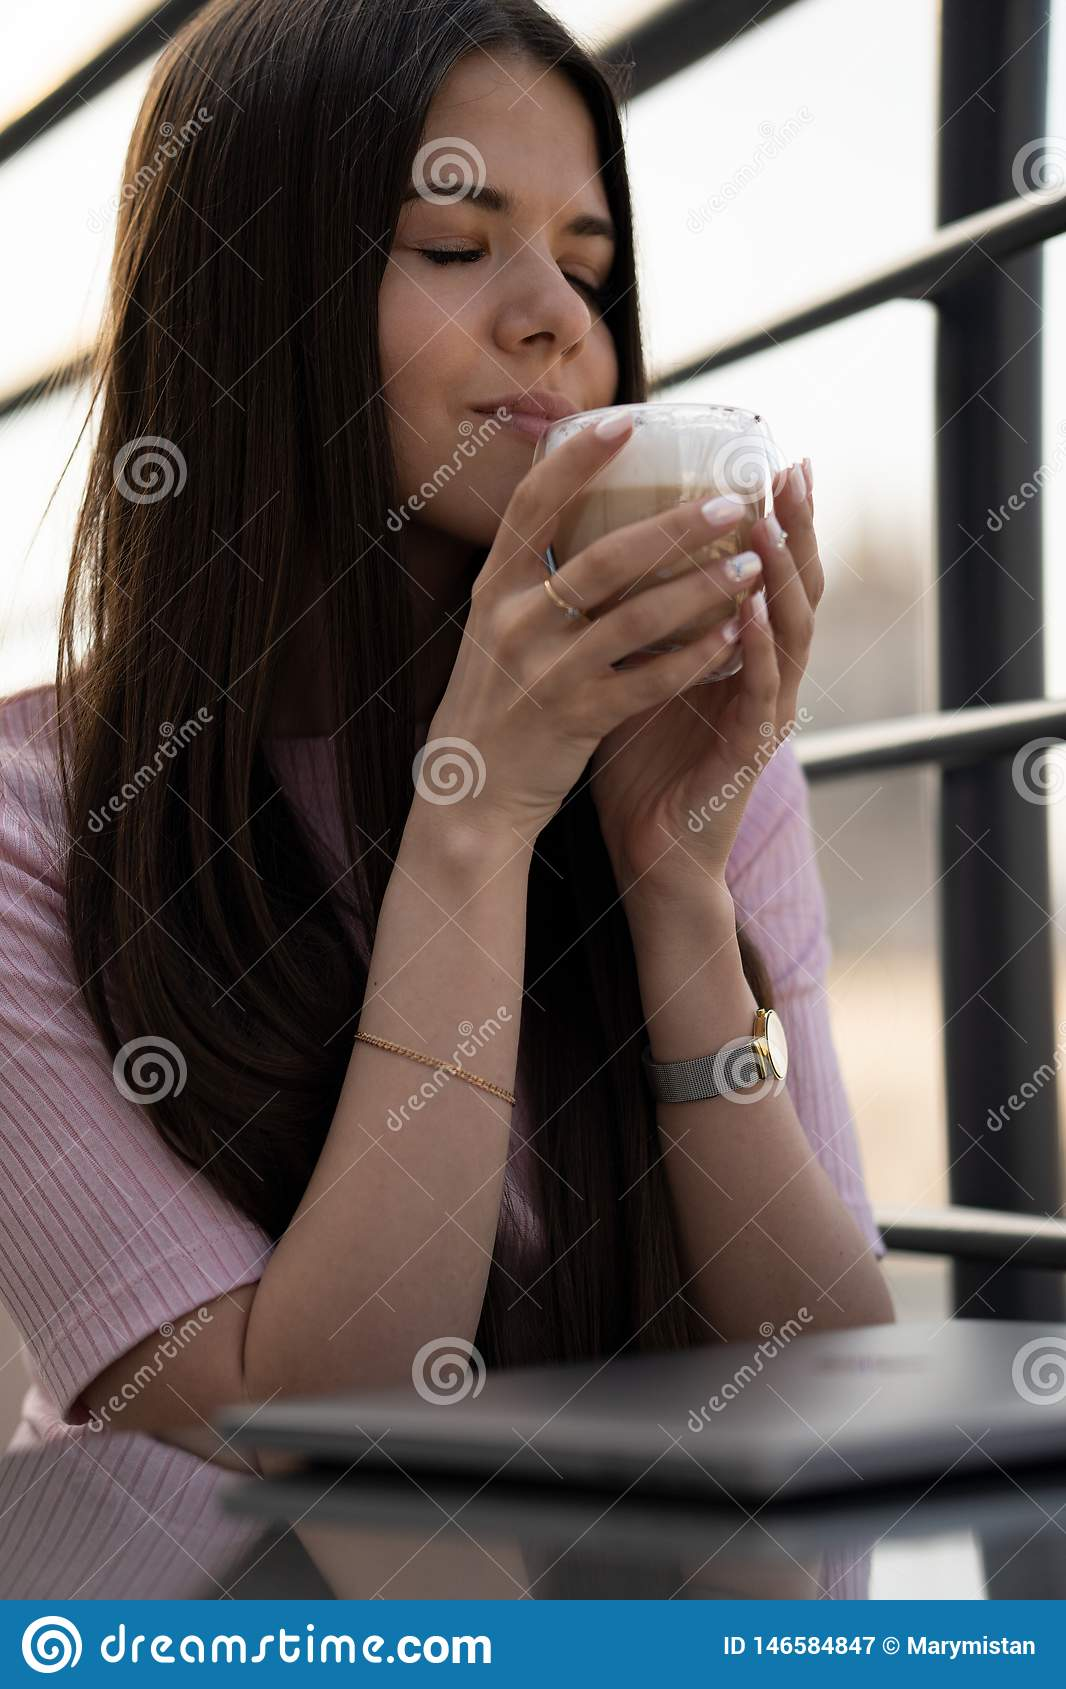 The girl is enjoying coffee. A cup of coffee in female hands. On the table is a closed laptop